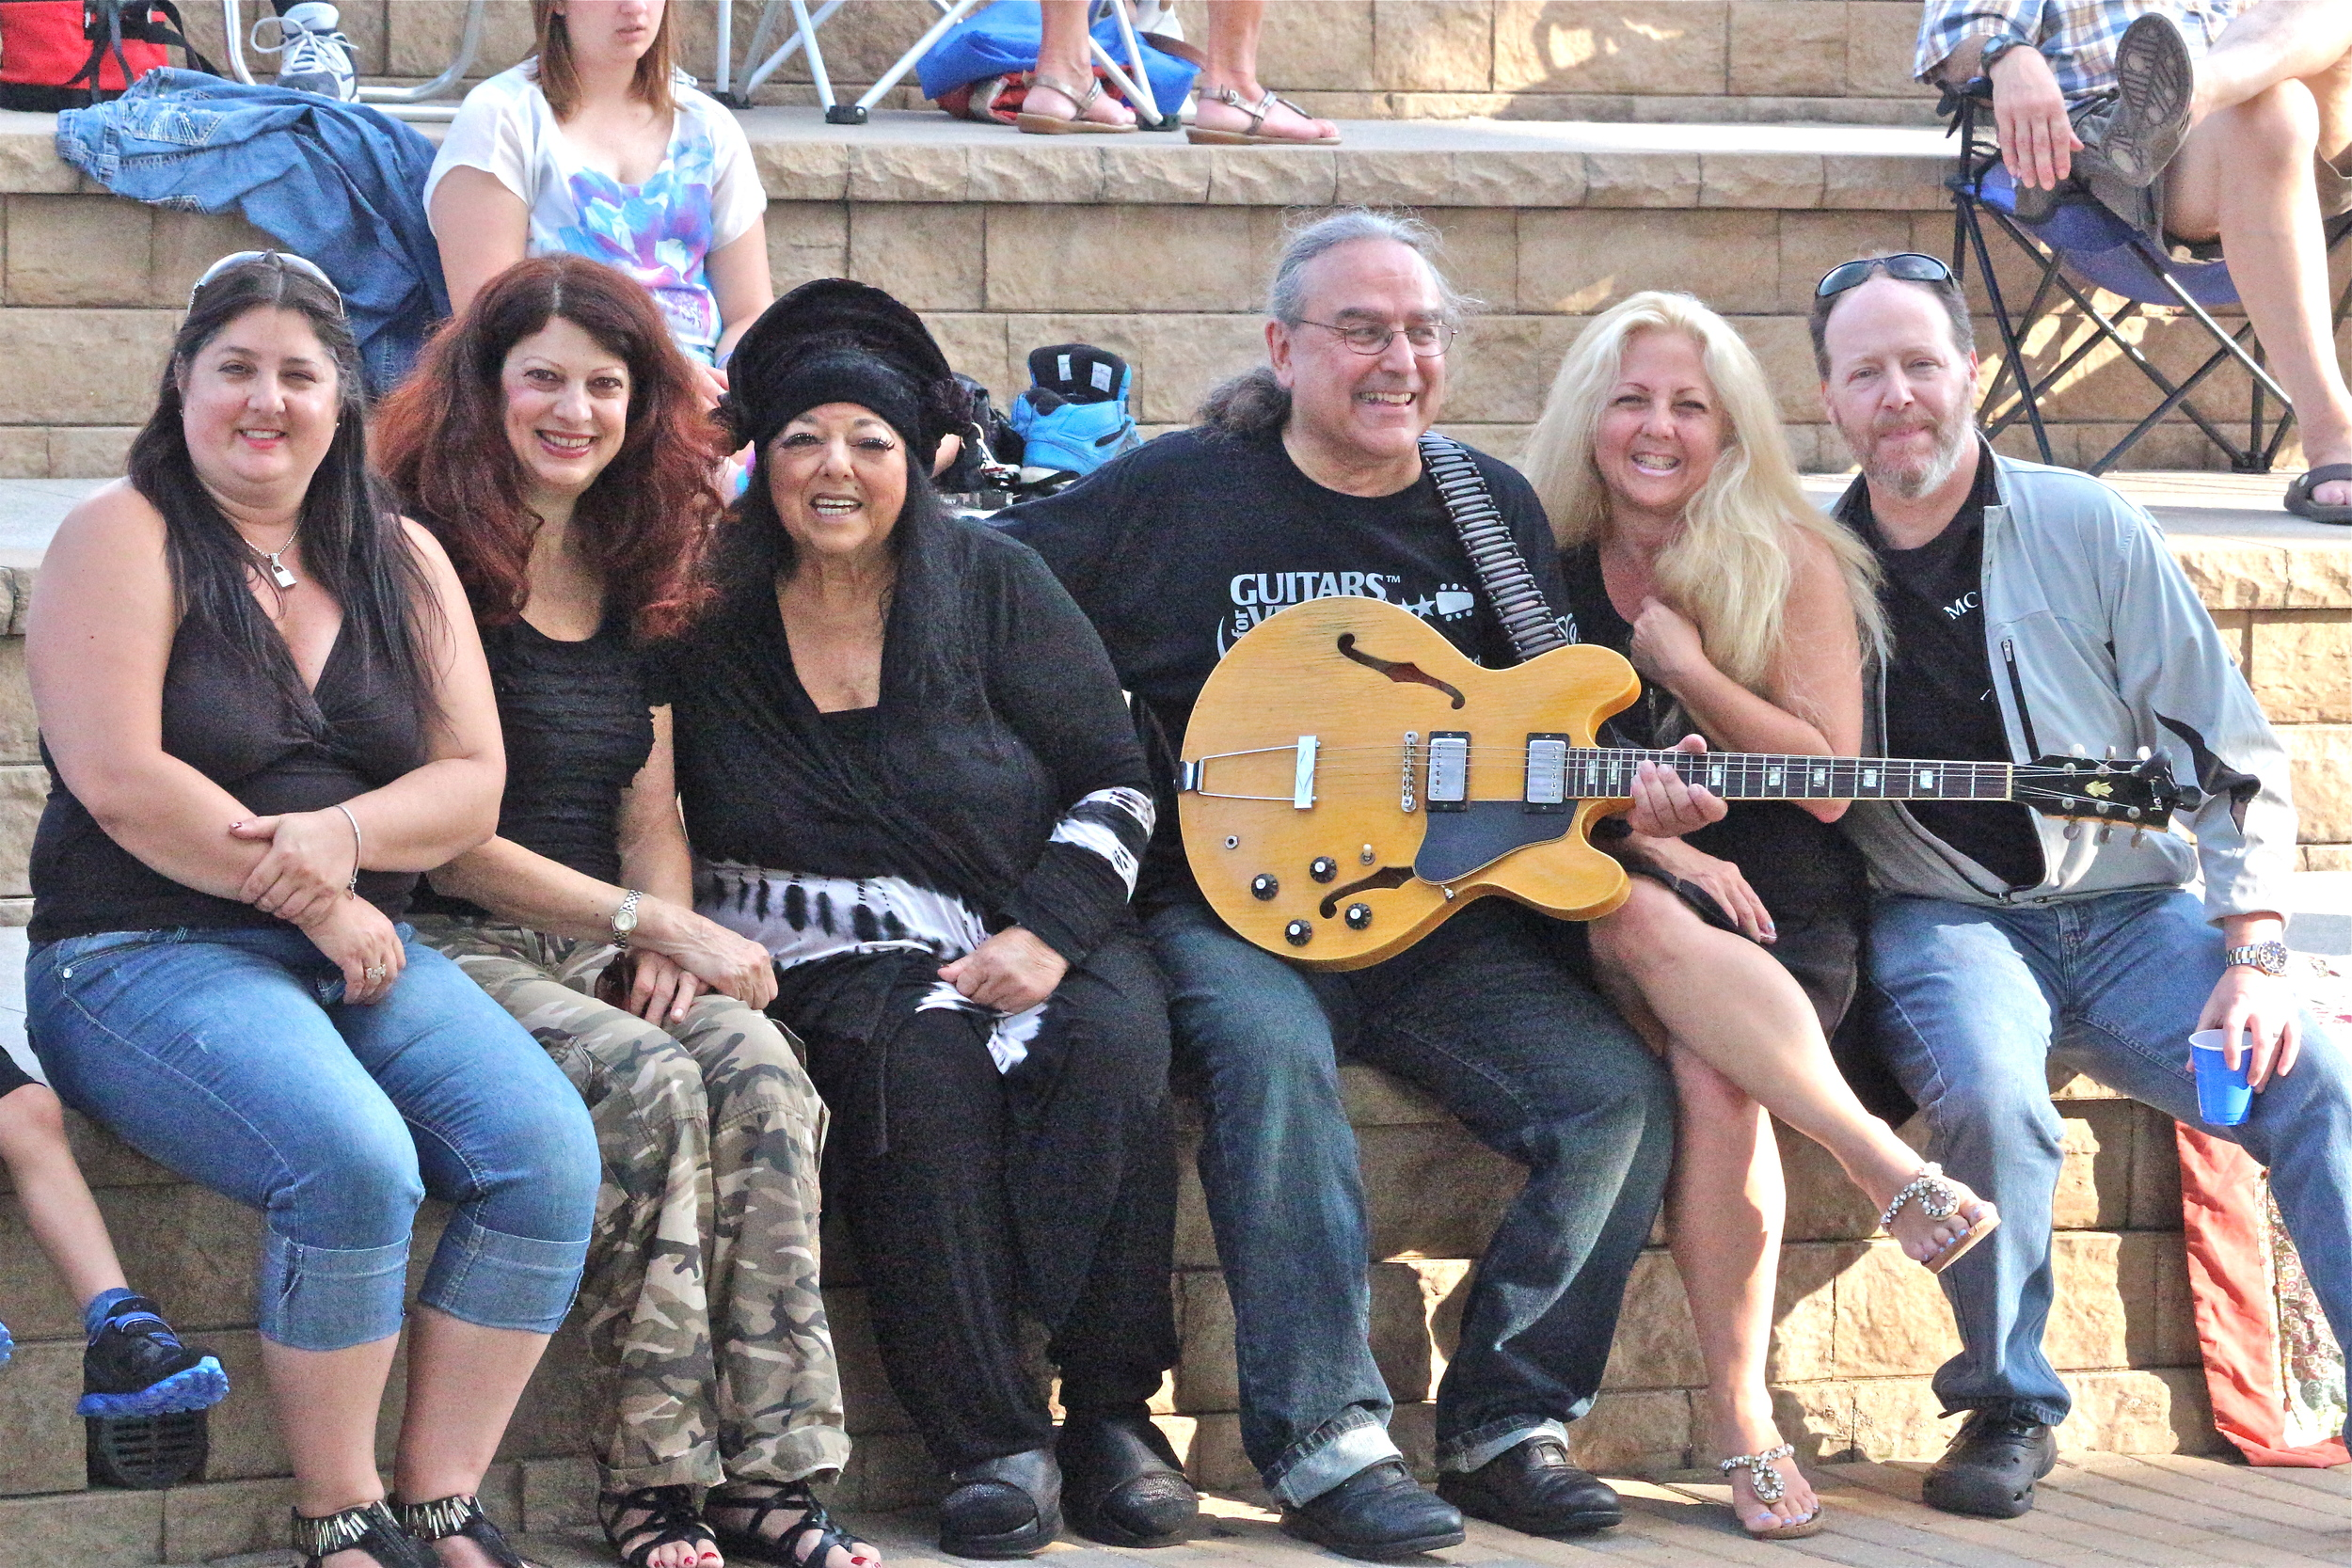 Romy Percansky, Scarlet Rivera, Marilyn Percansky, Billy Hallquist, Lisa and Randy Goldwater / Salute to the Music of Bob Dylan / Town Green Amphitheatre / Maple Grove, Minnesota / August 6th, 2014 / Photo by Jeff Miletich